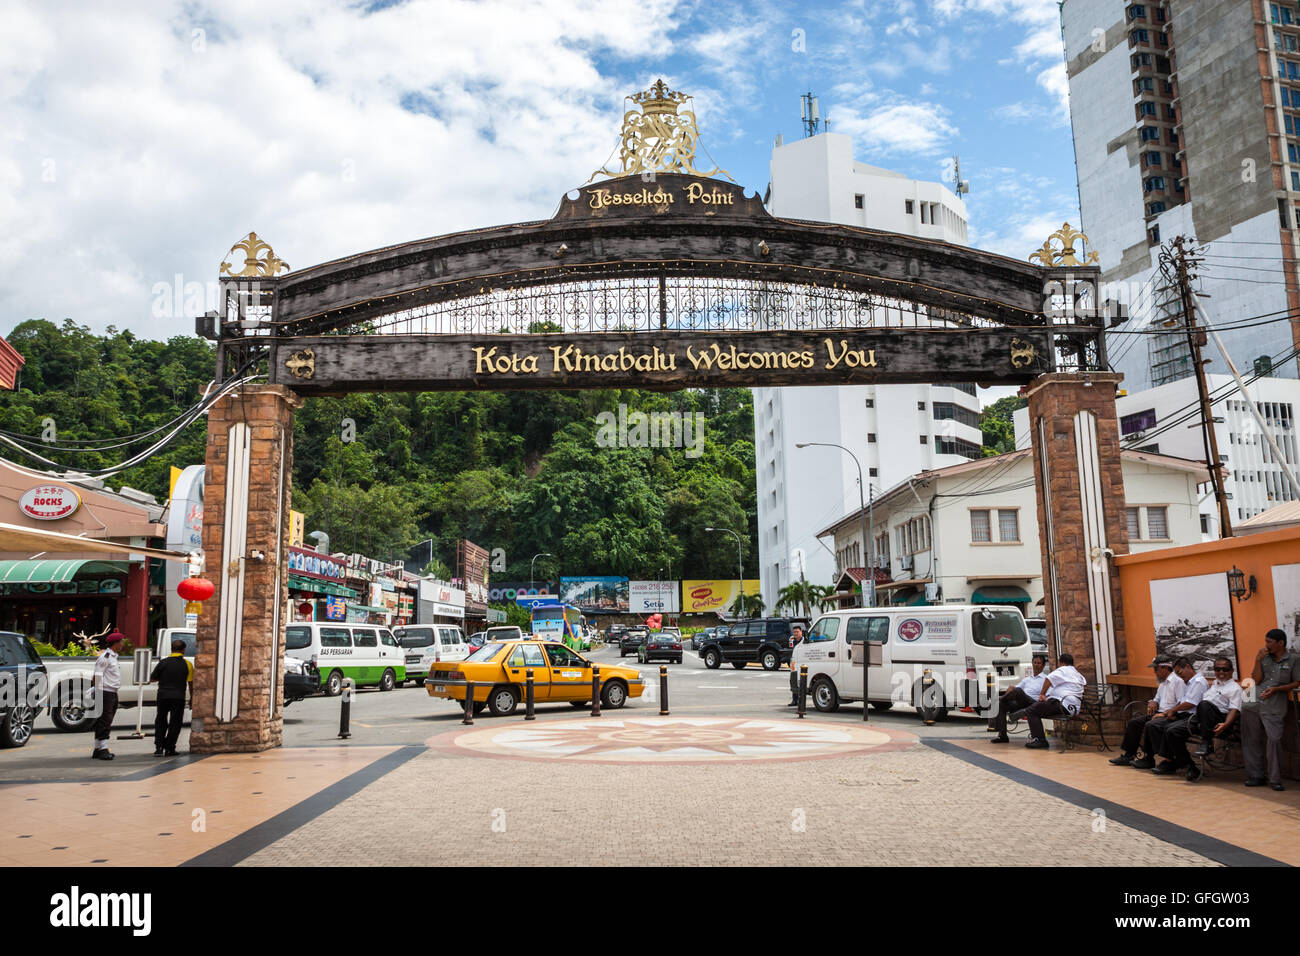 Welcome sign over the entrance/exit to Jesselton Point, Kota Kinabalu, Sabah, Malaysia Borneo - Stock Image